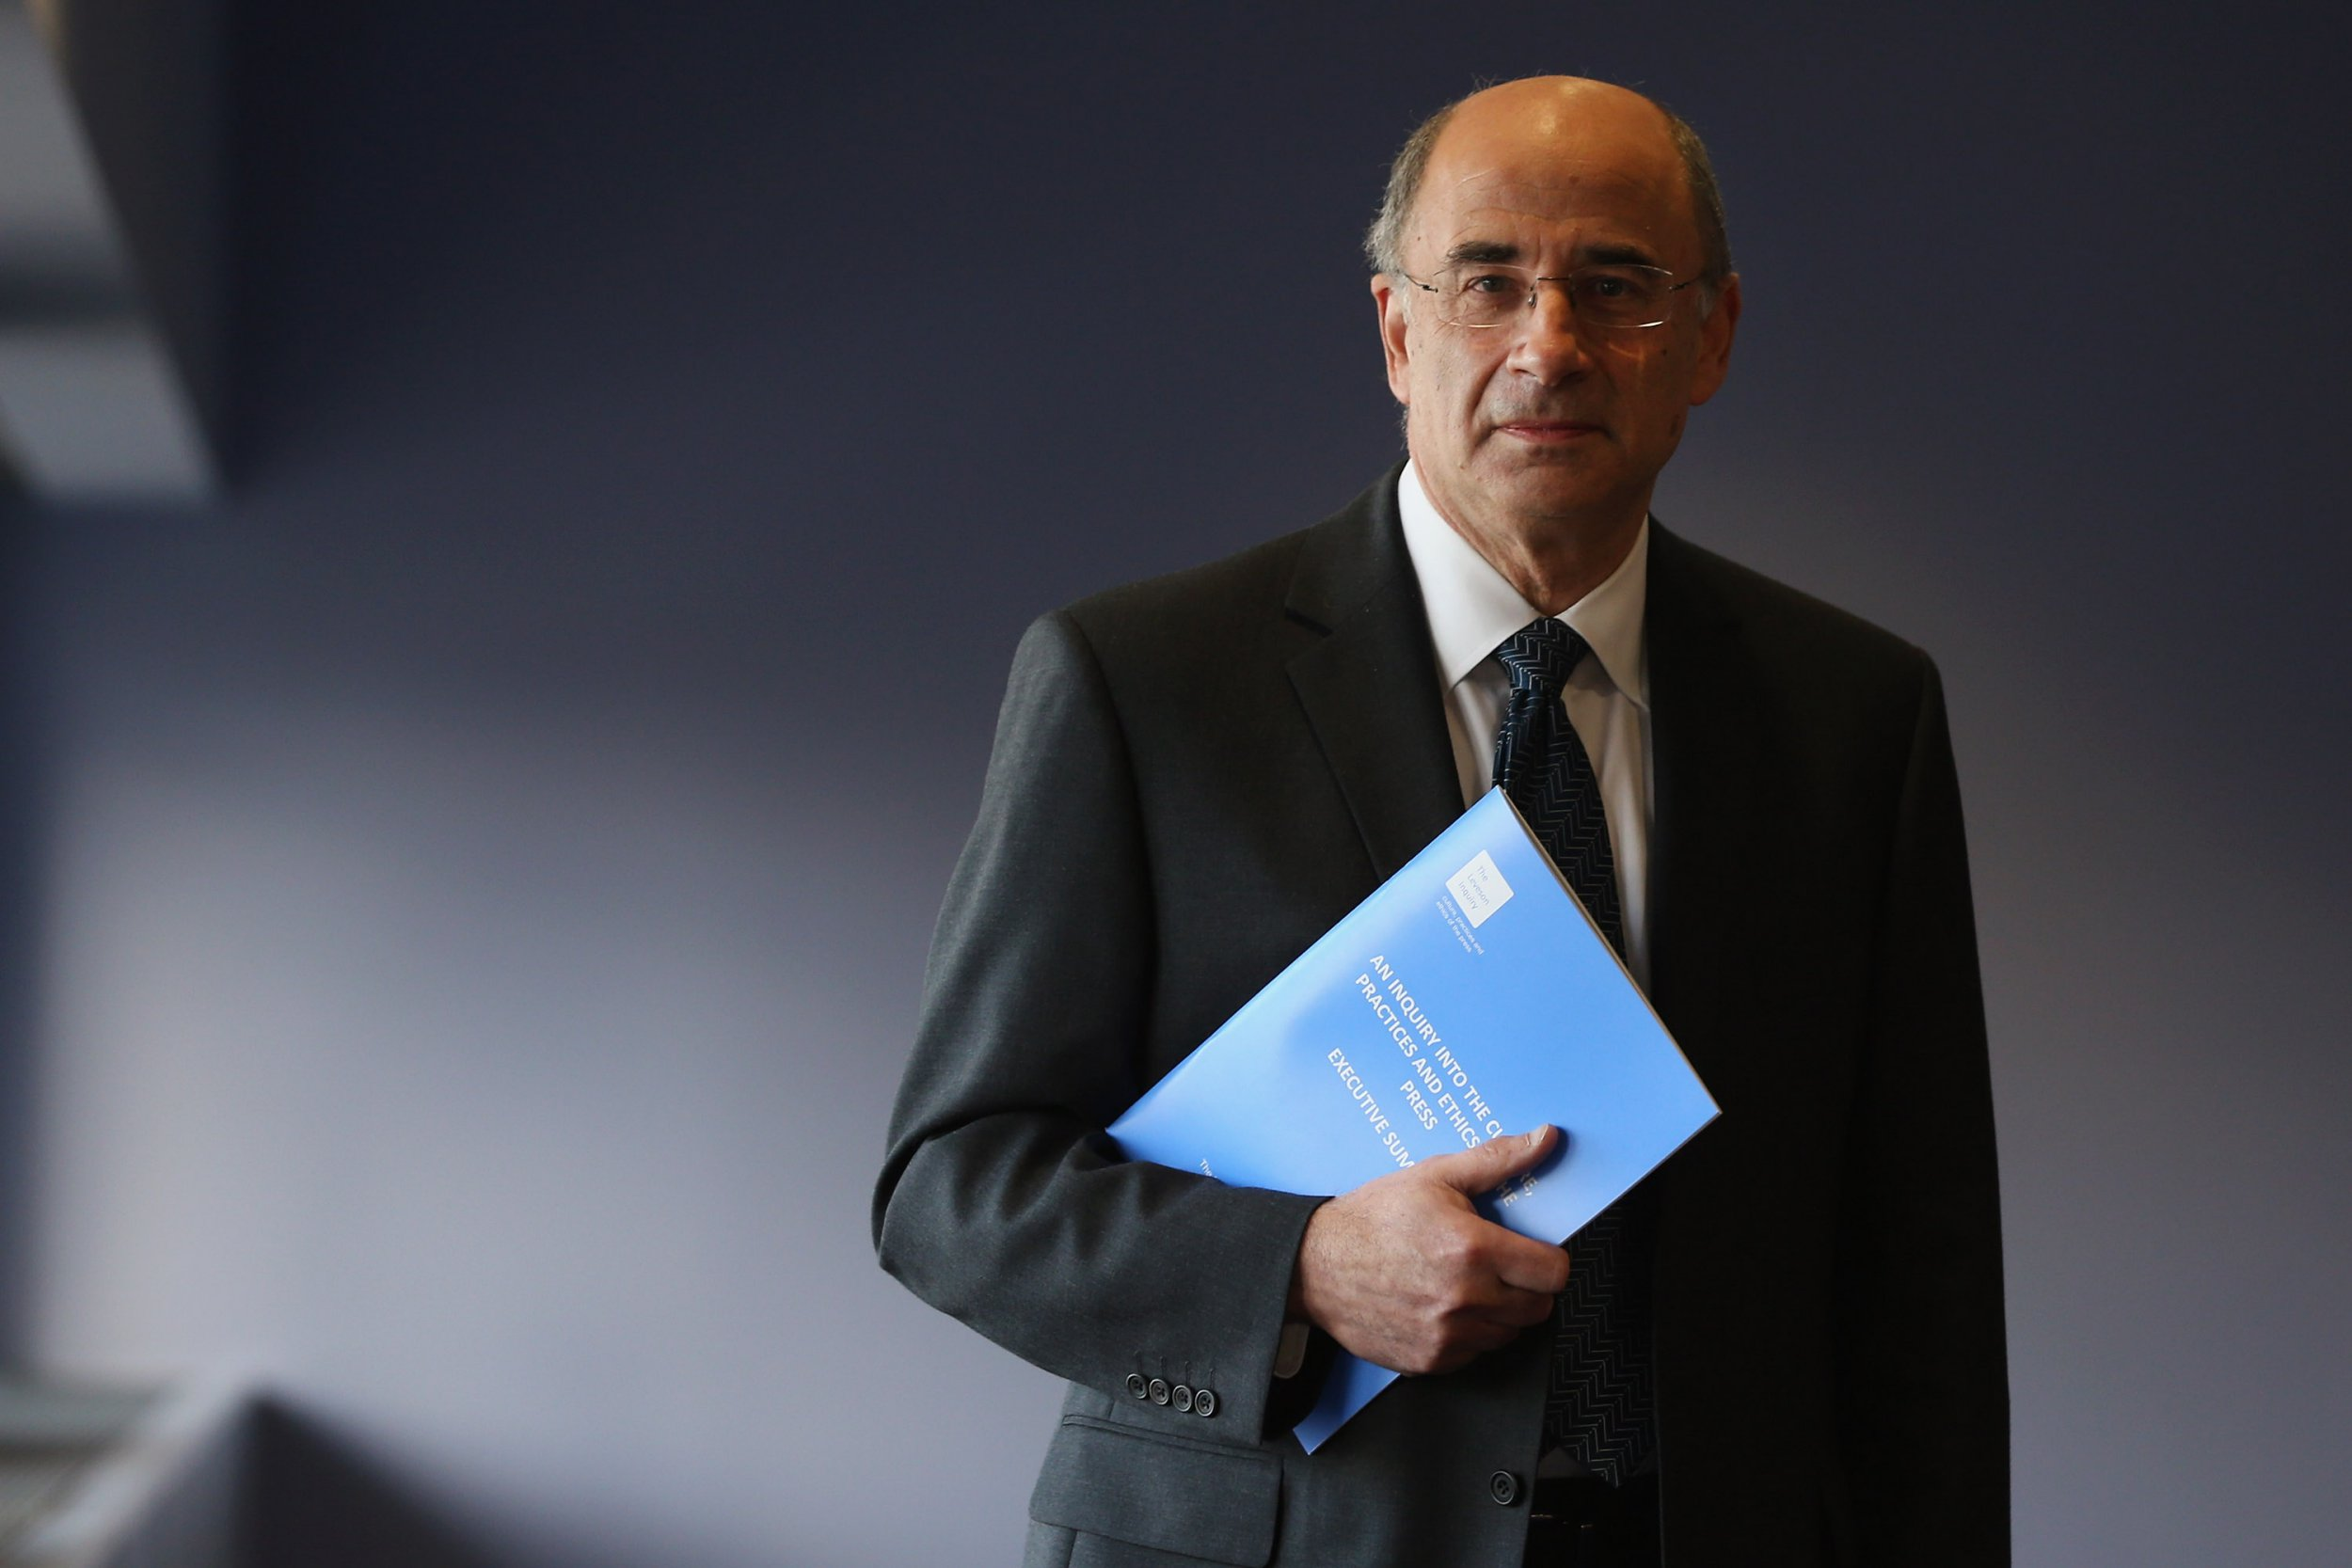 LONDON, ENGLAND - NOVEMBER 29: Lord Justice Leveson poses with a summary report into press standards on November 29, 2012 in London, England. The findings of the Leveson Inquiry, which focus on the culture, practices and ethics of the press, was published today after a 16 month inquiry. (Photo by Dan Kitwood/Getty Images)